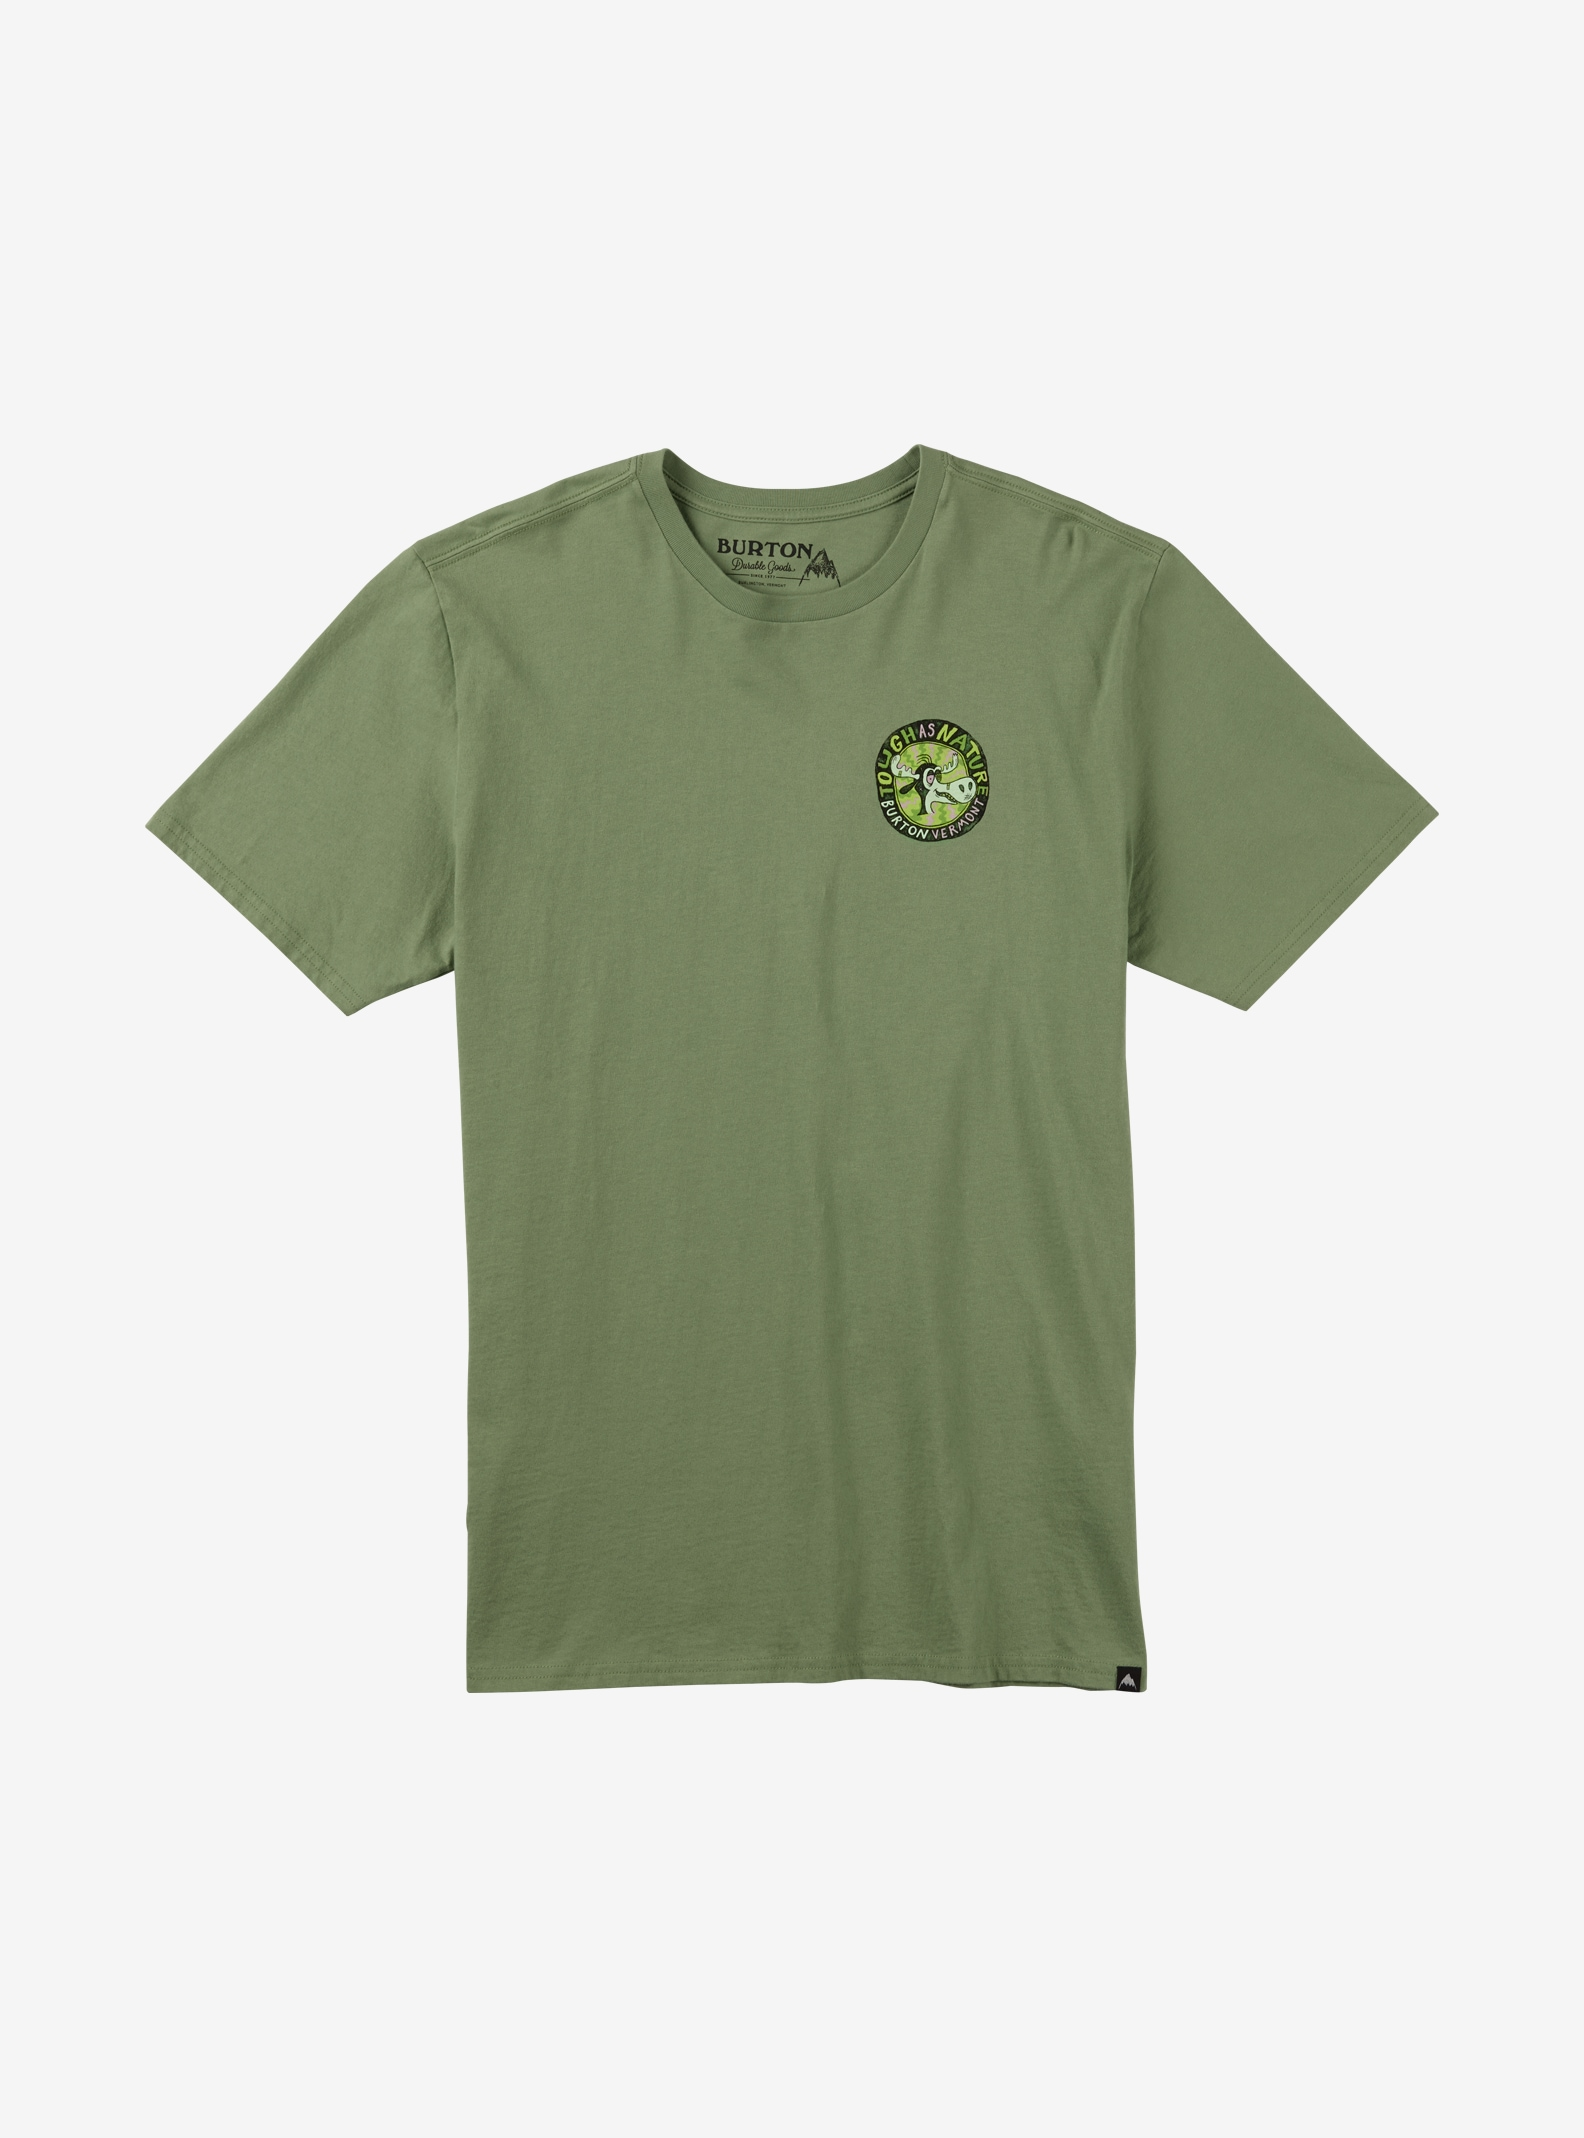 Burton Tough as Nature Short Sleeve T Shirt shown in Oil Green